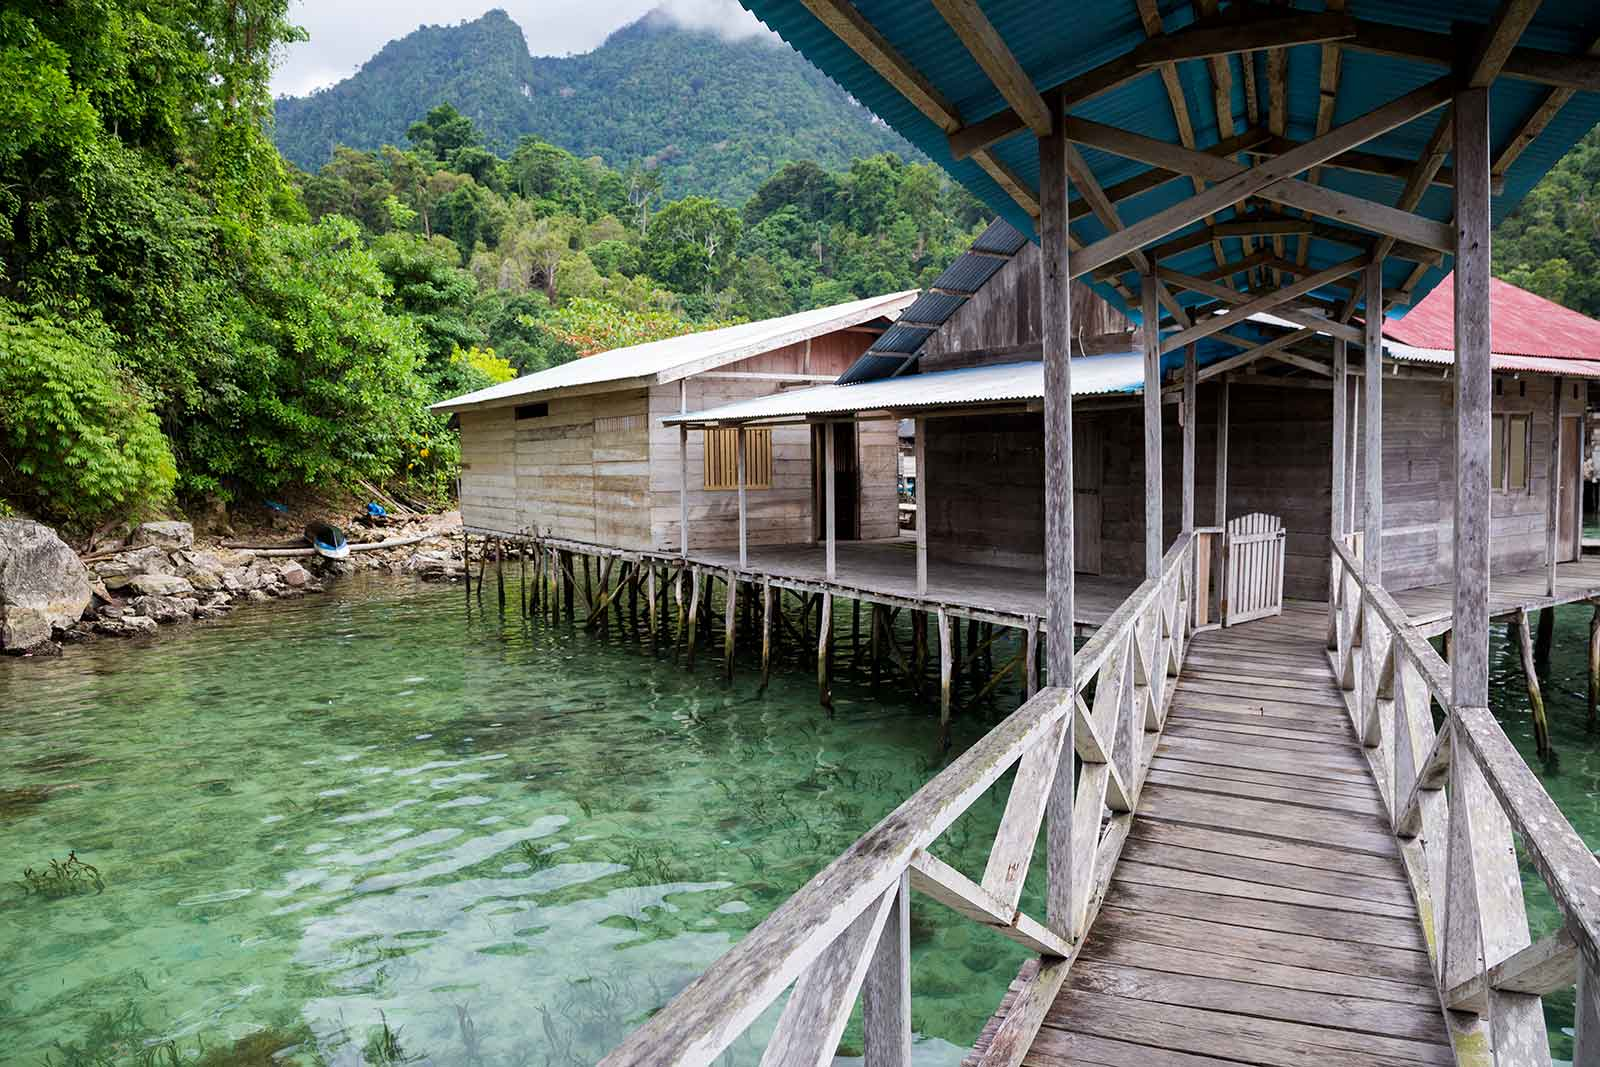 Maluku Islands: Lisar Bahari Resort in Sawai is definitely the place to stay at. You might not have sand beaches here, but you can jump into the crystal clear water straight from your room, which is not too bad if you ask me.